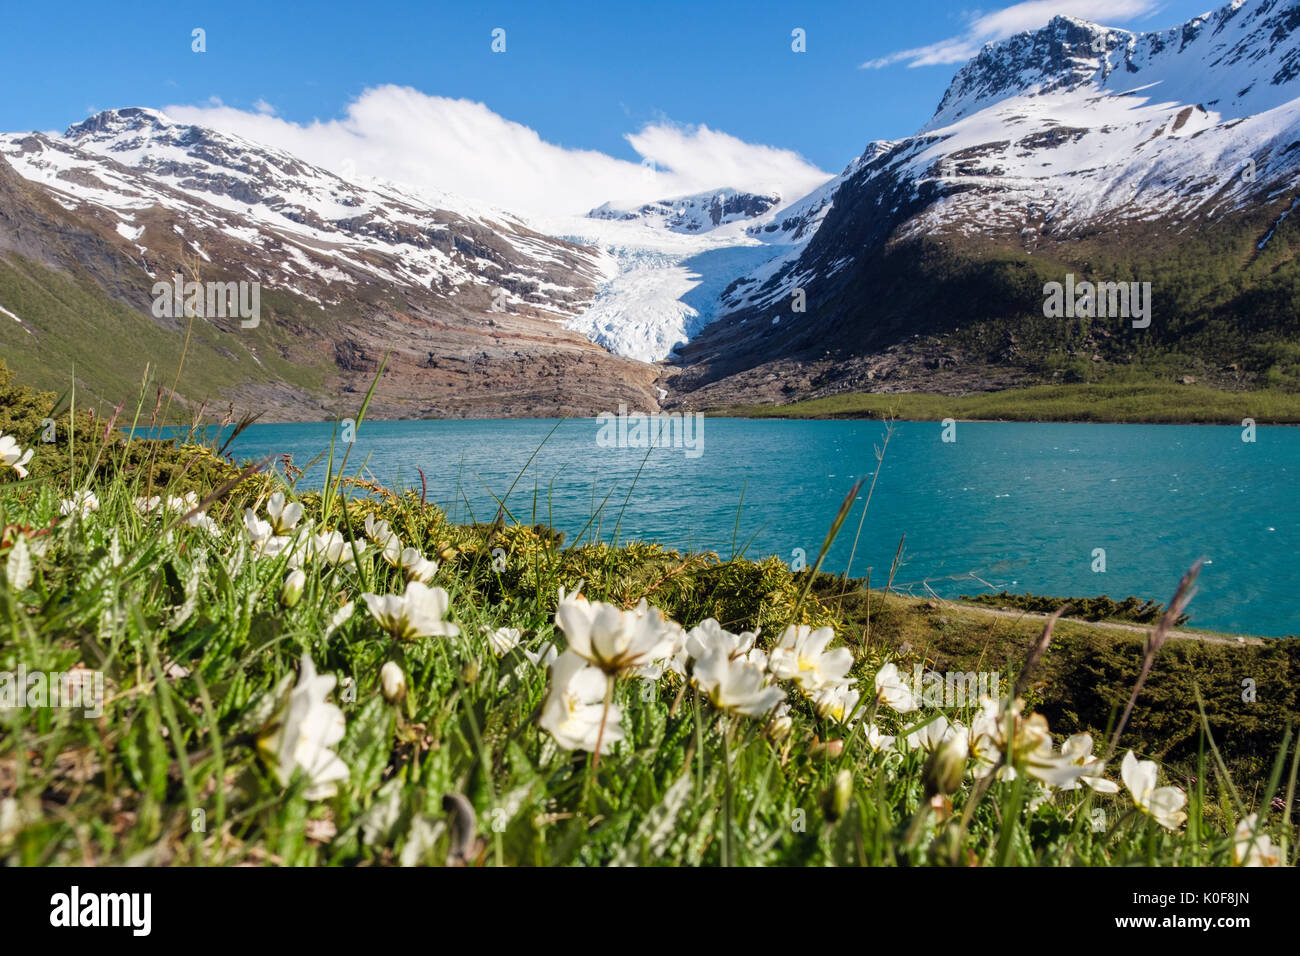 Engabreen glacier arm of Svartisen ice cap seen across Svartisvatnet lake with Mountain Avens Dryas octopetala flowers Stock Photo